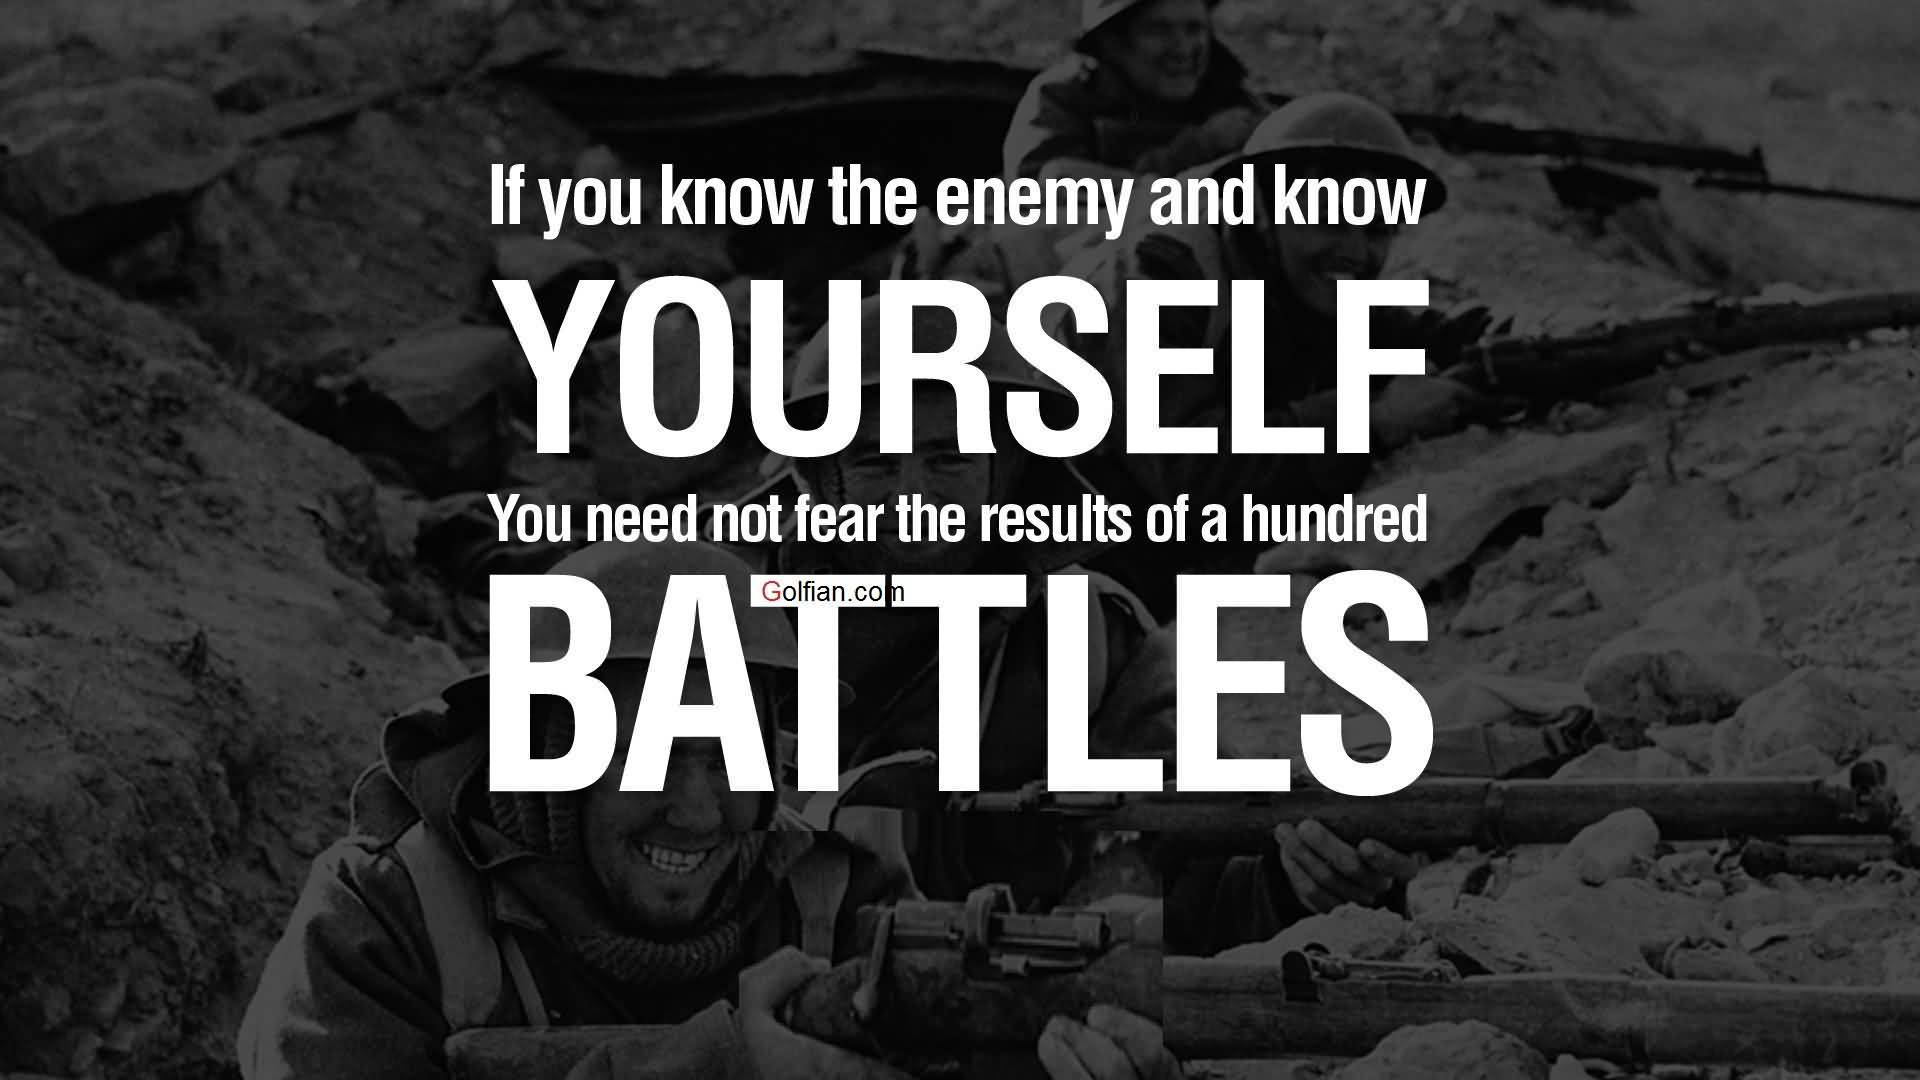 If you know the enemy and know yourself you need not fear